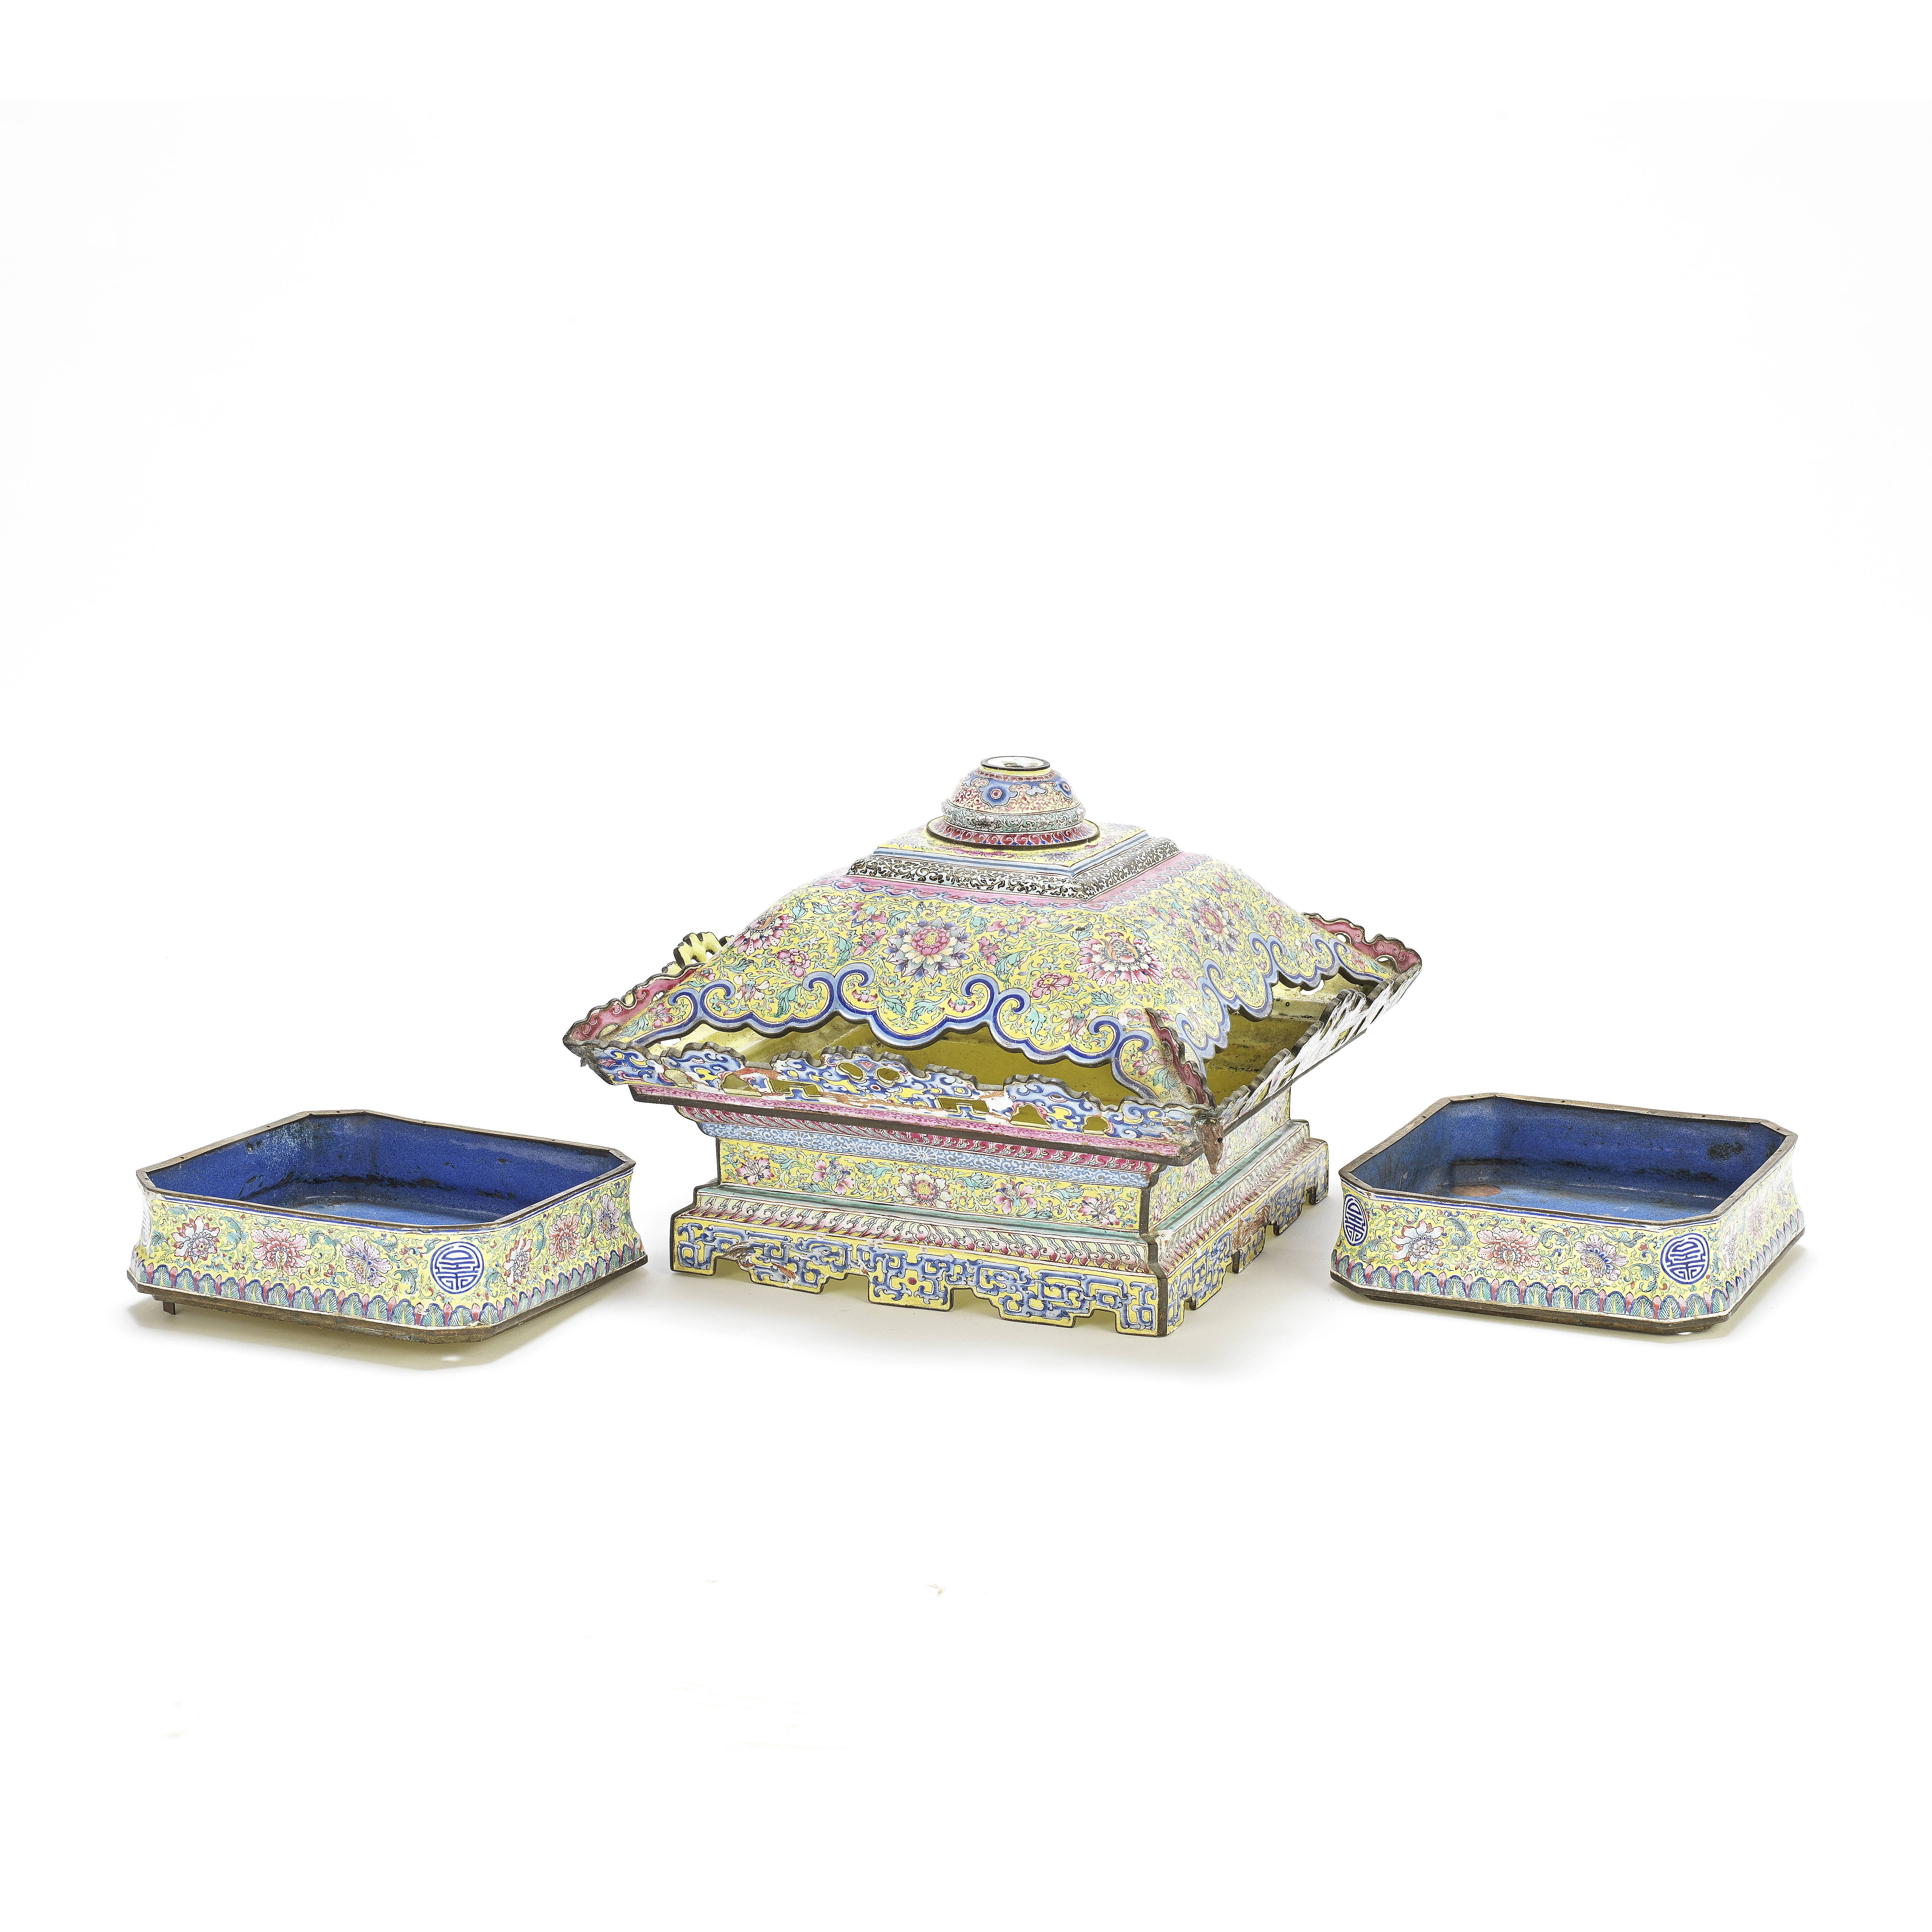 A PAINTED ENAMEL BASE-SECTION AND TWO SIMILARLY DECORATED TRAYS 18th century (3)